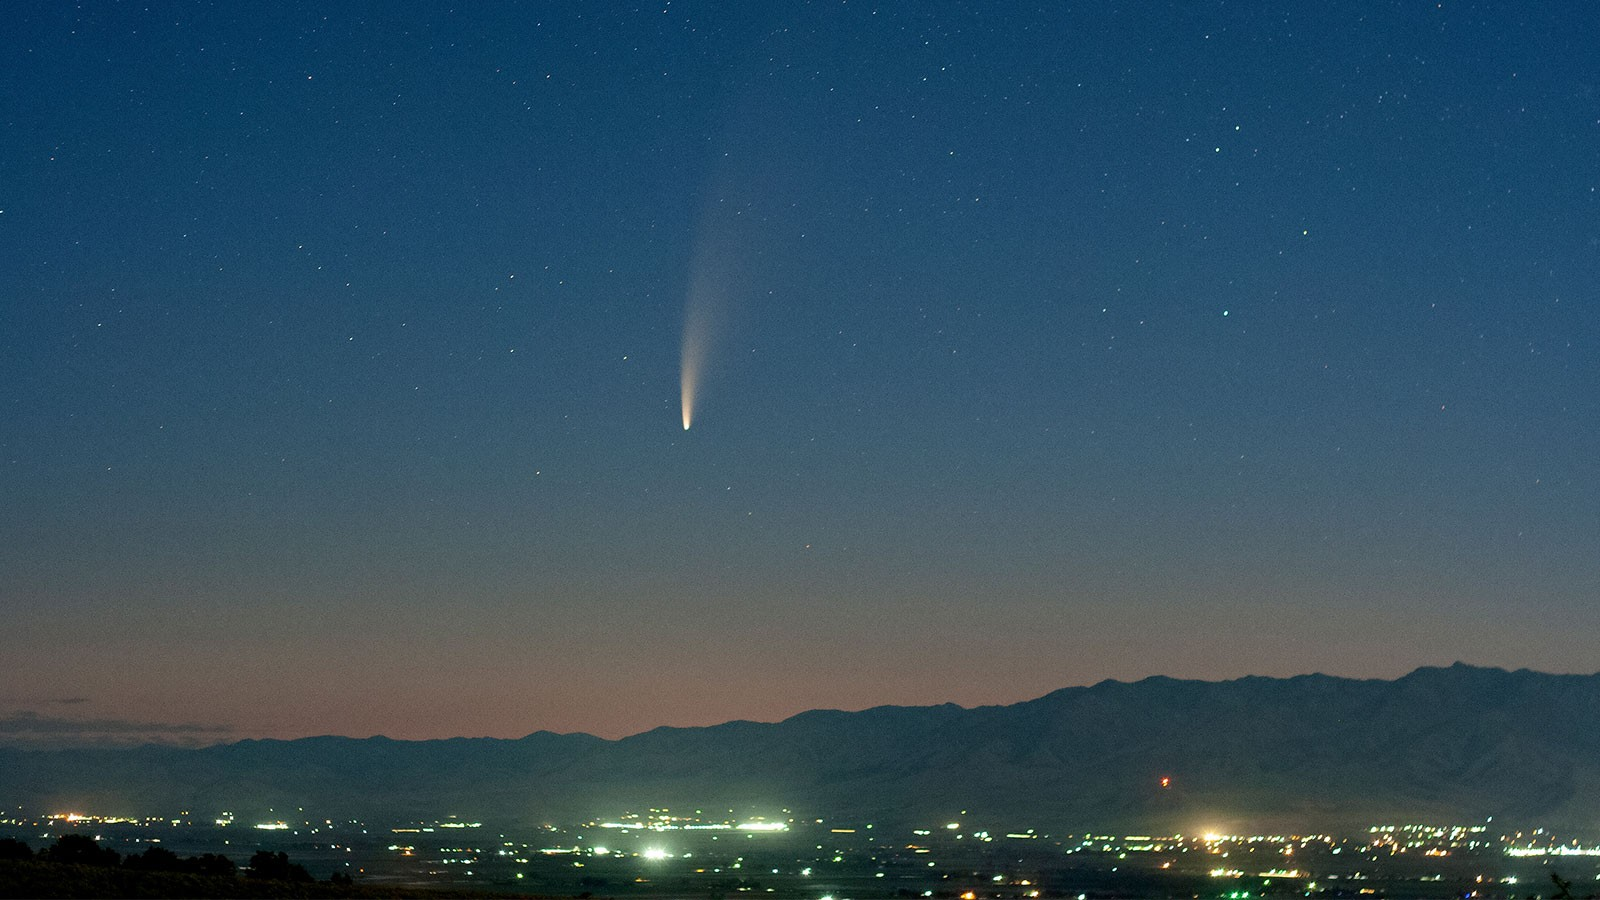 James Champagne captured this image of Comet NEOWISE from the Deep Canyon Trailhead in Cache Valley.